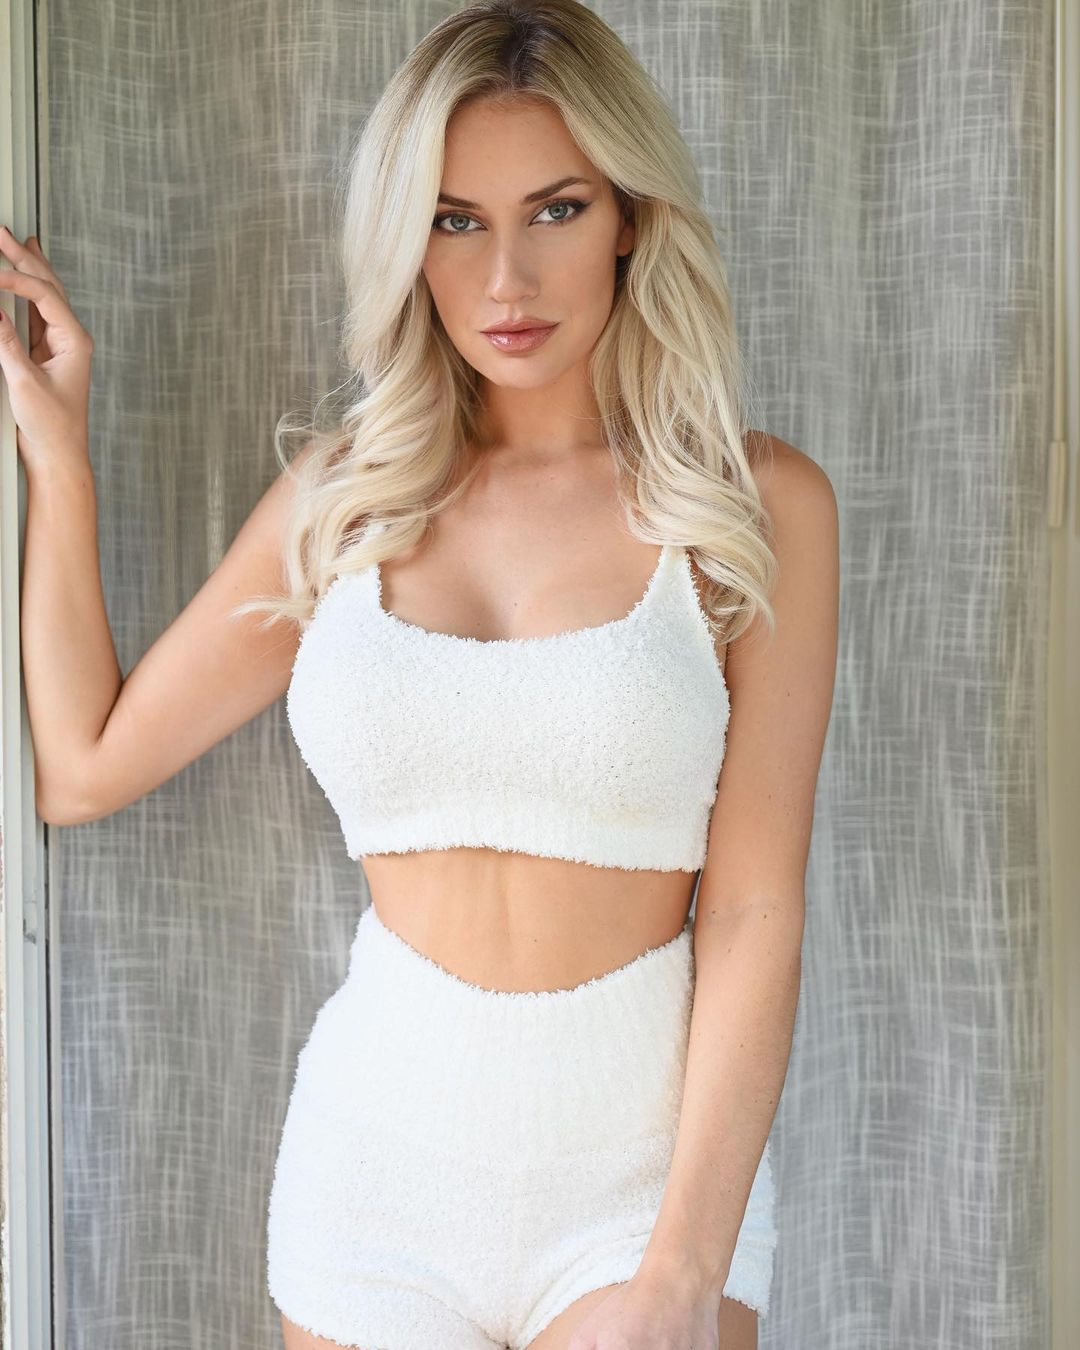 Paige Spirinac and Her Cleavage Roll Out the Red Carpet for the NFL Season! - Photo 8